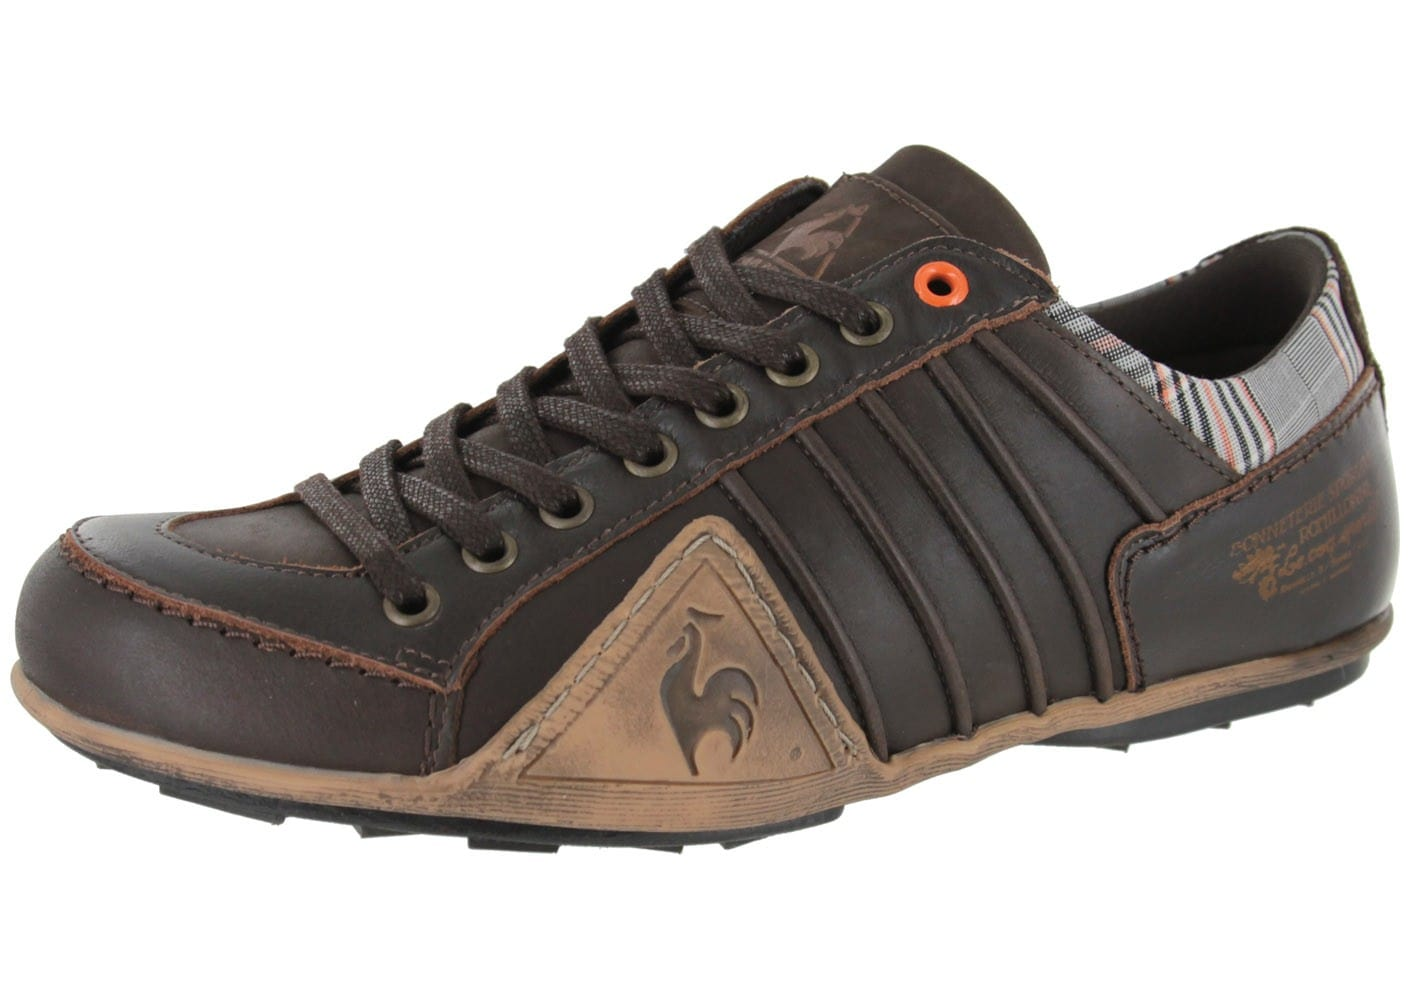 le coq sportif buffalo cuir reglisse chaussures baskets homme chausport. Black Bedroom Furniture Sets. Home Design Ideas